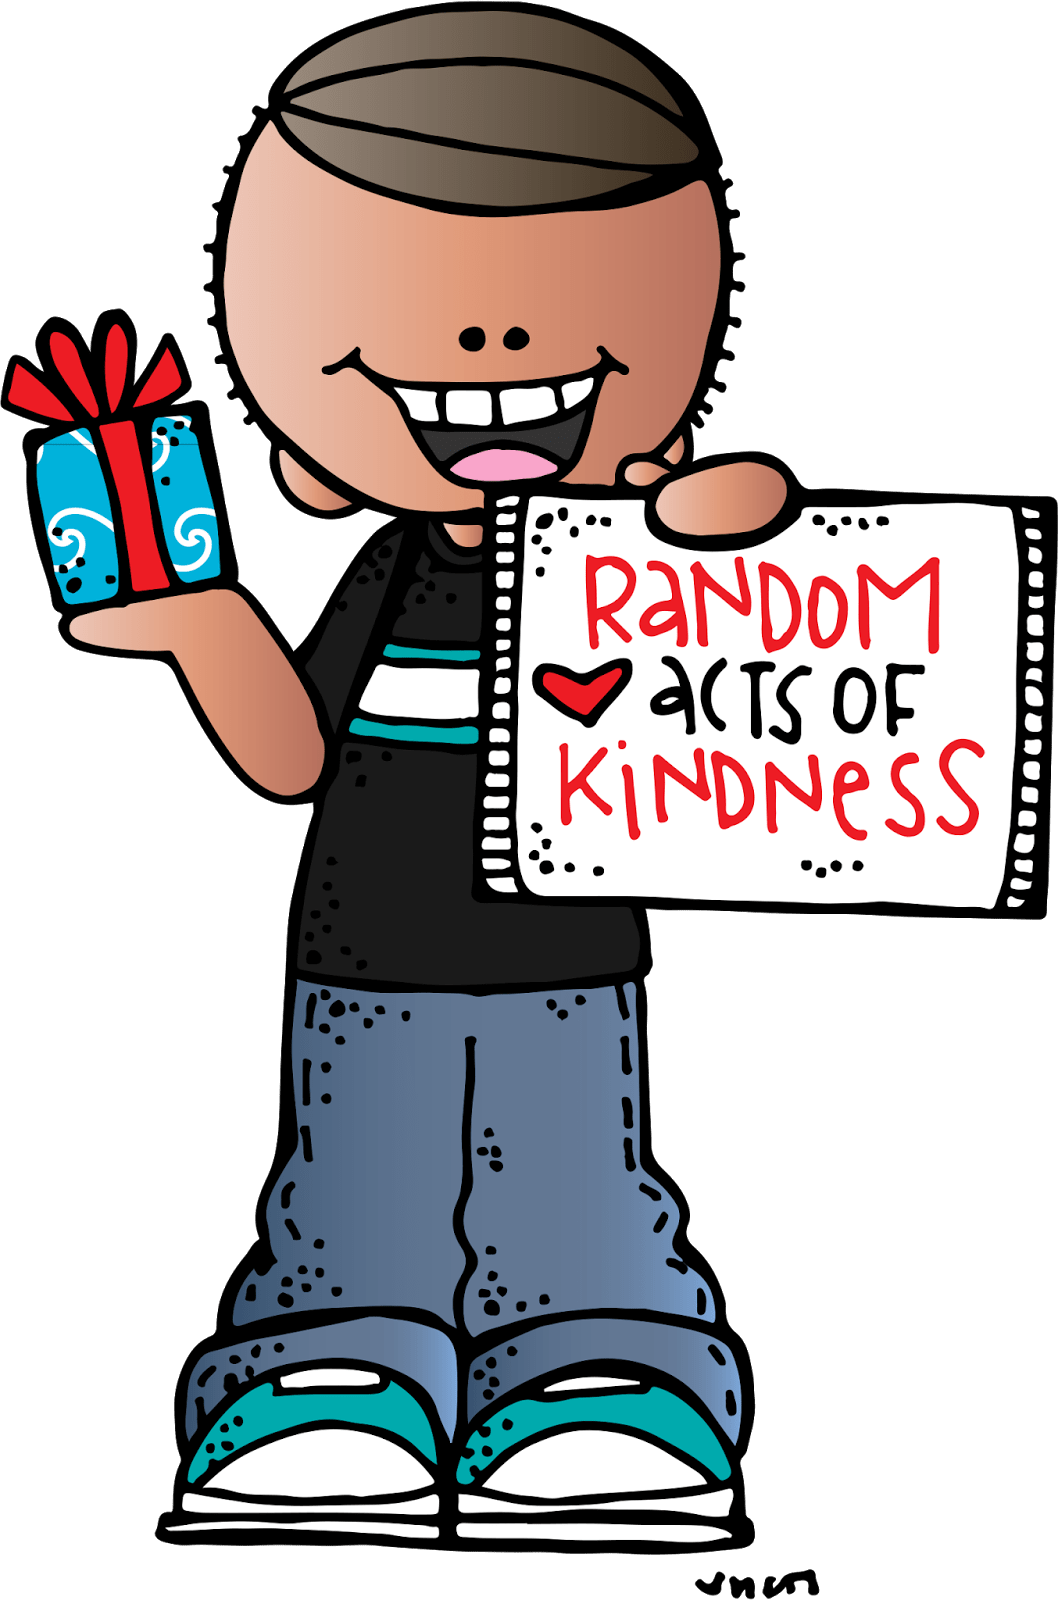 Act of kindness clipart 4 » Clipart Portal.